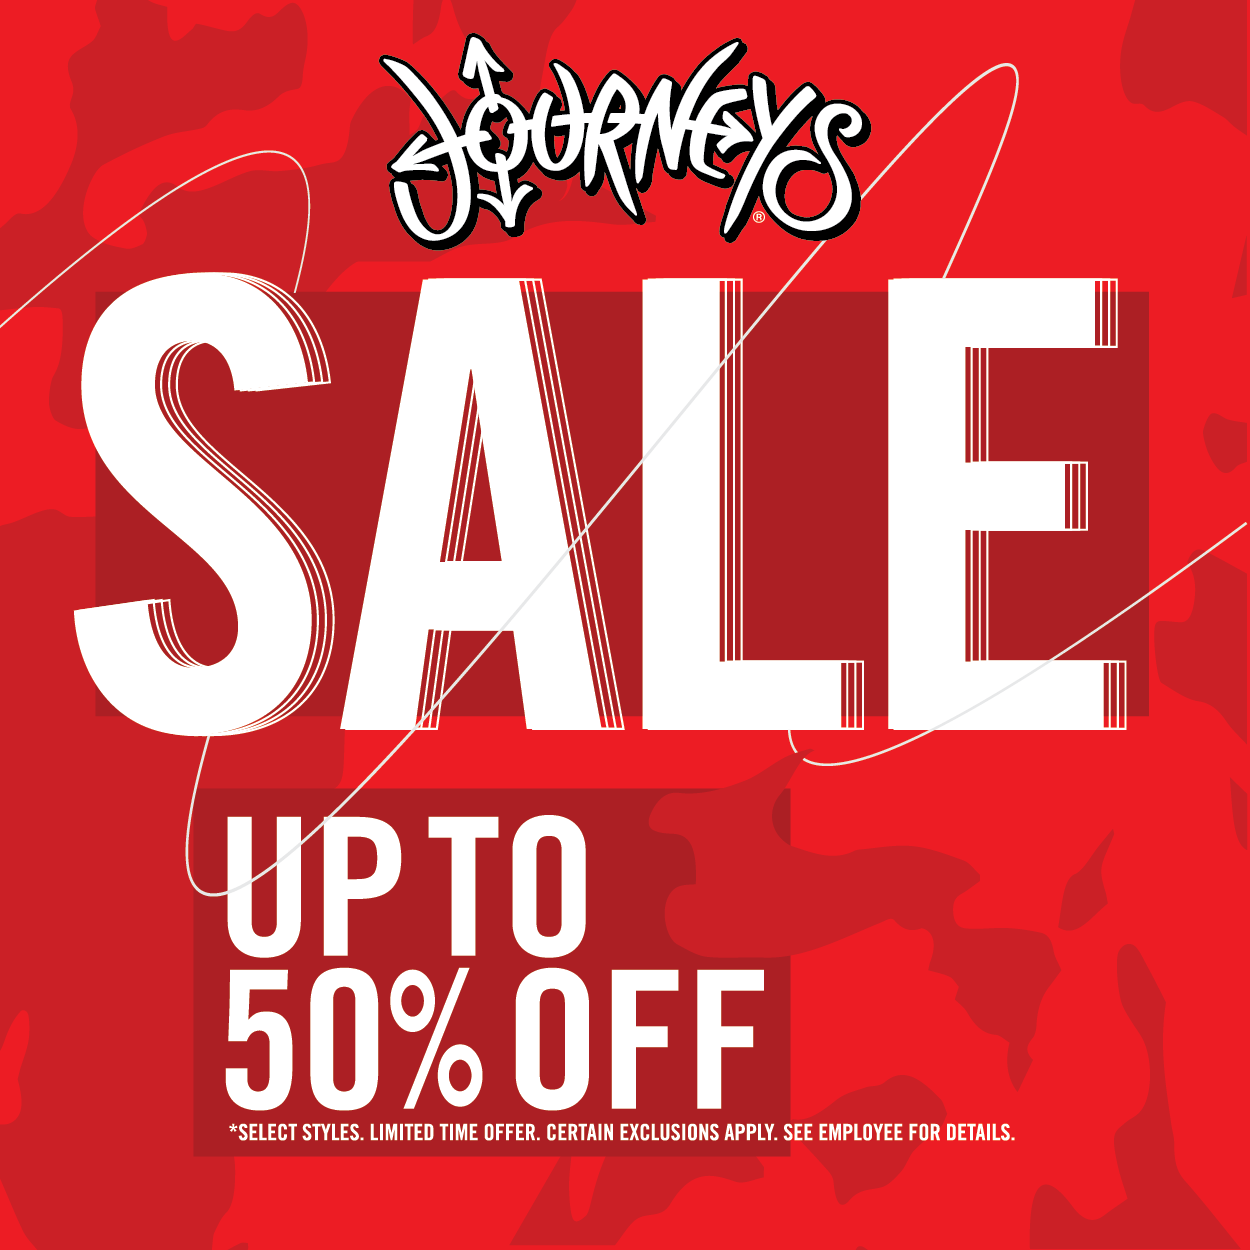 Journeys logo. Copy: Sale up to 50% off *Select styles. Limited time offer. Certain exclusions apply. See employee for details.